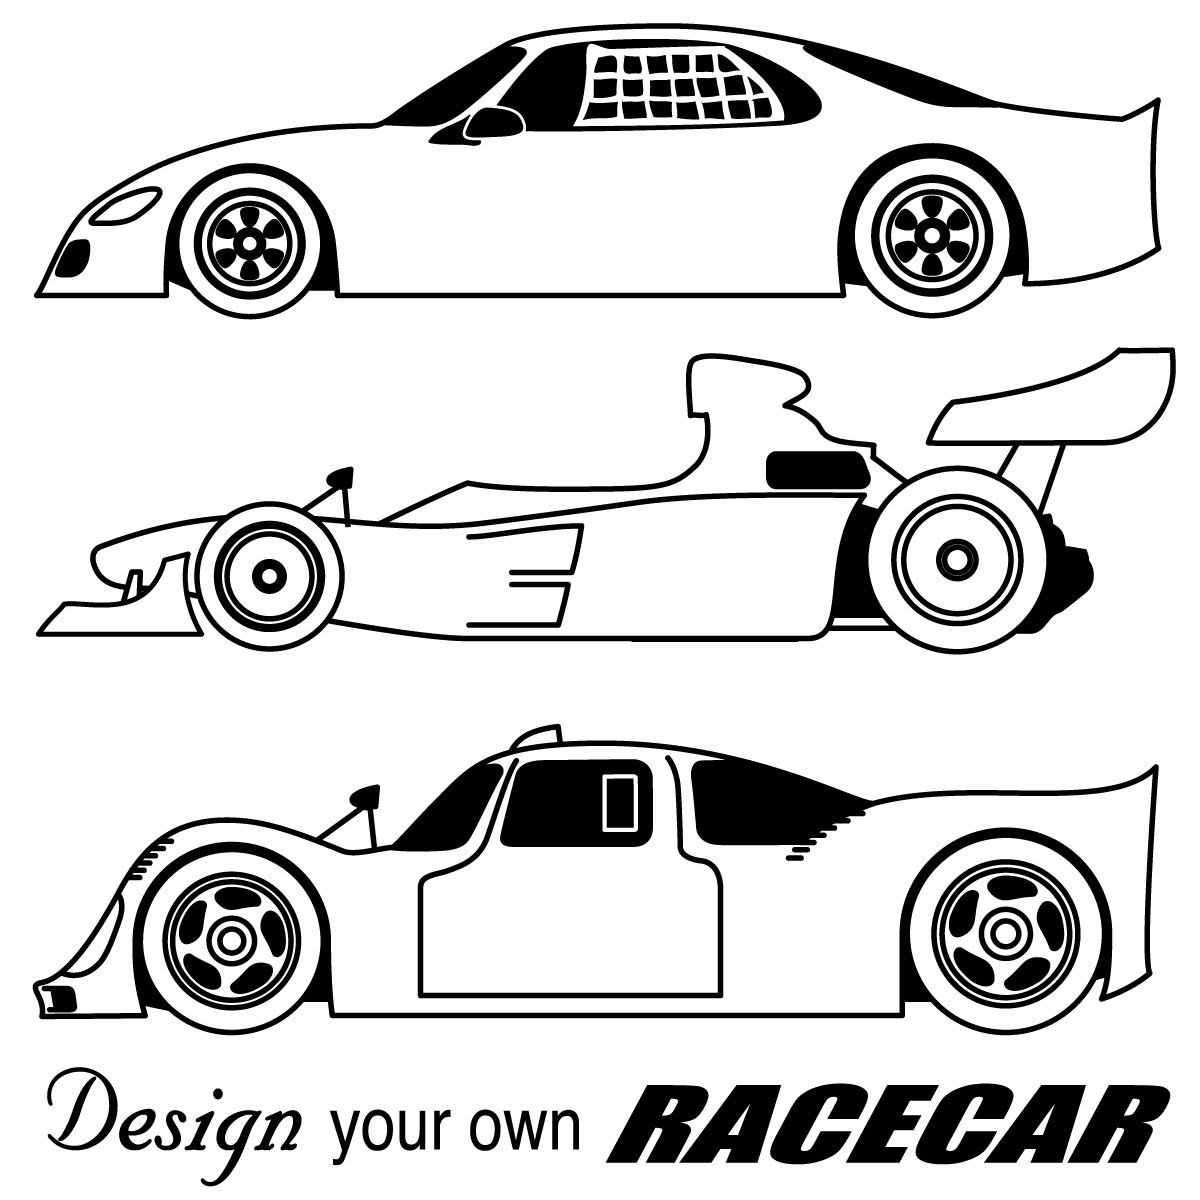 Coloring derby cars - Race Cars Coloring Pages Free Large Images